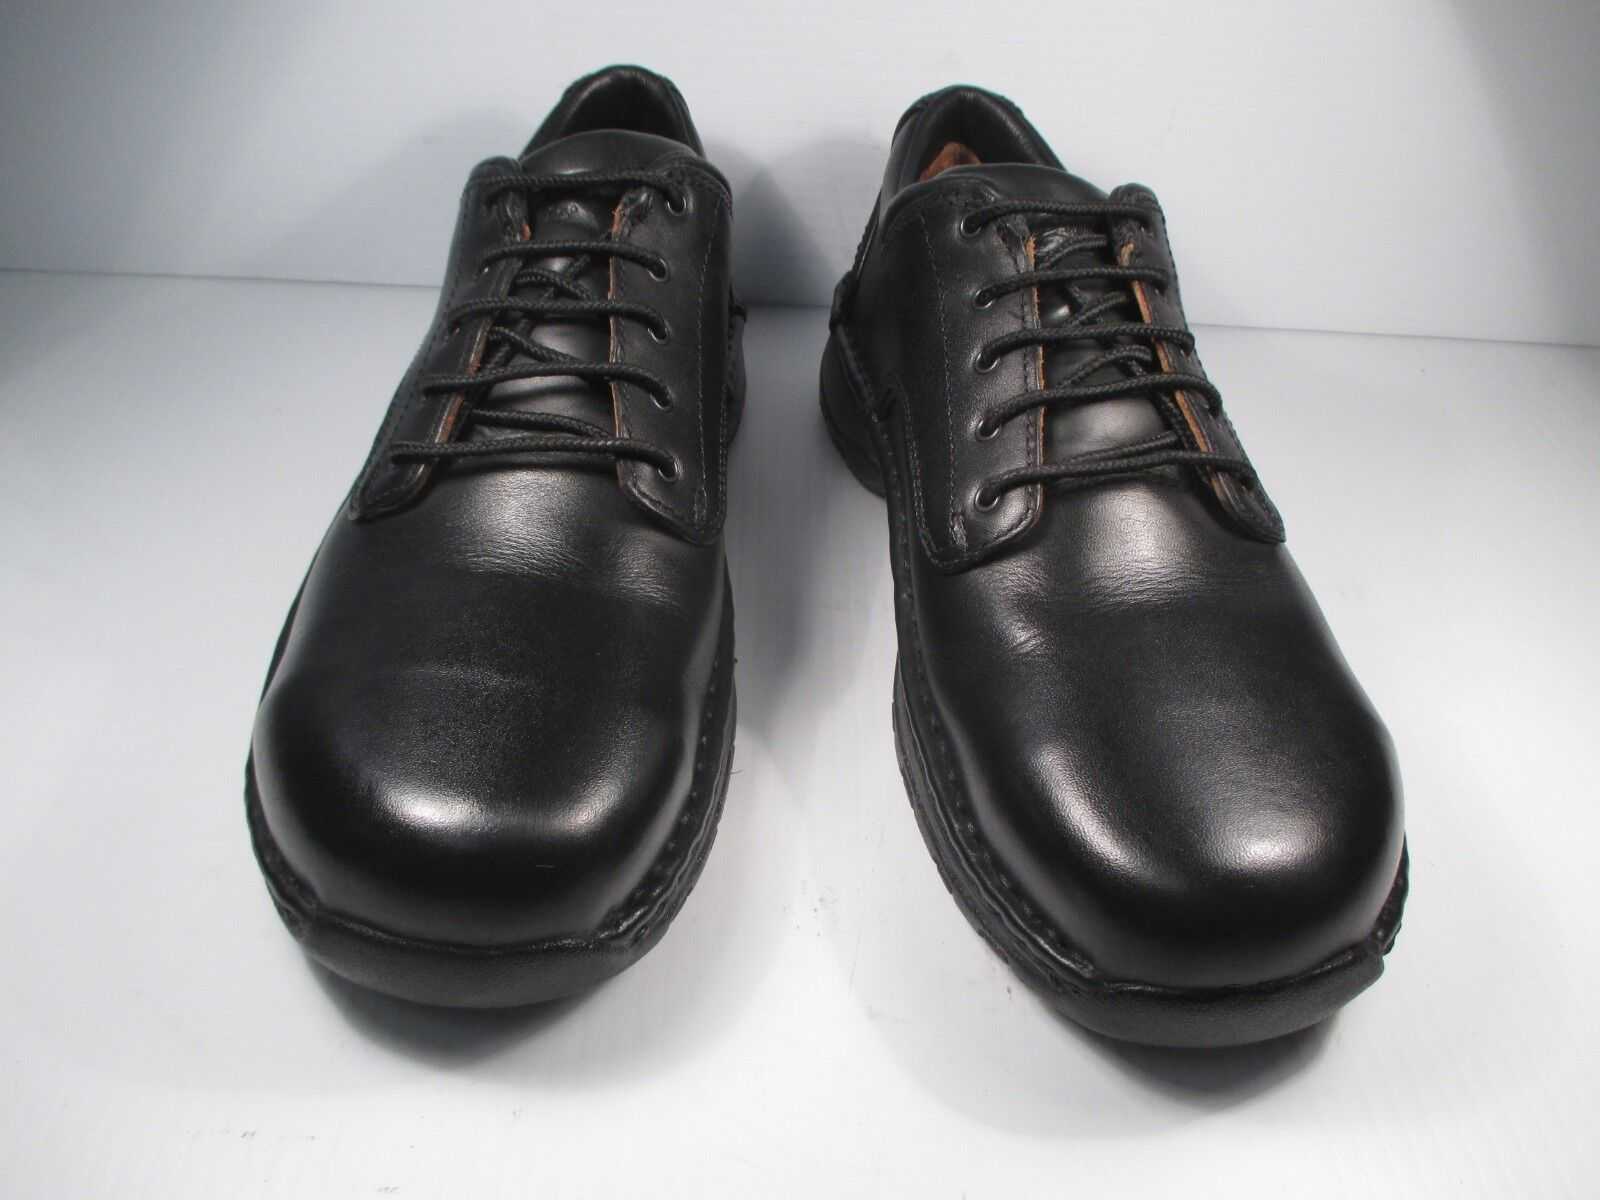 Red Wing Safety Toe Black Leather Oxford Style   6703 size 8.5 D medium